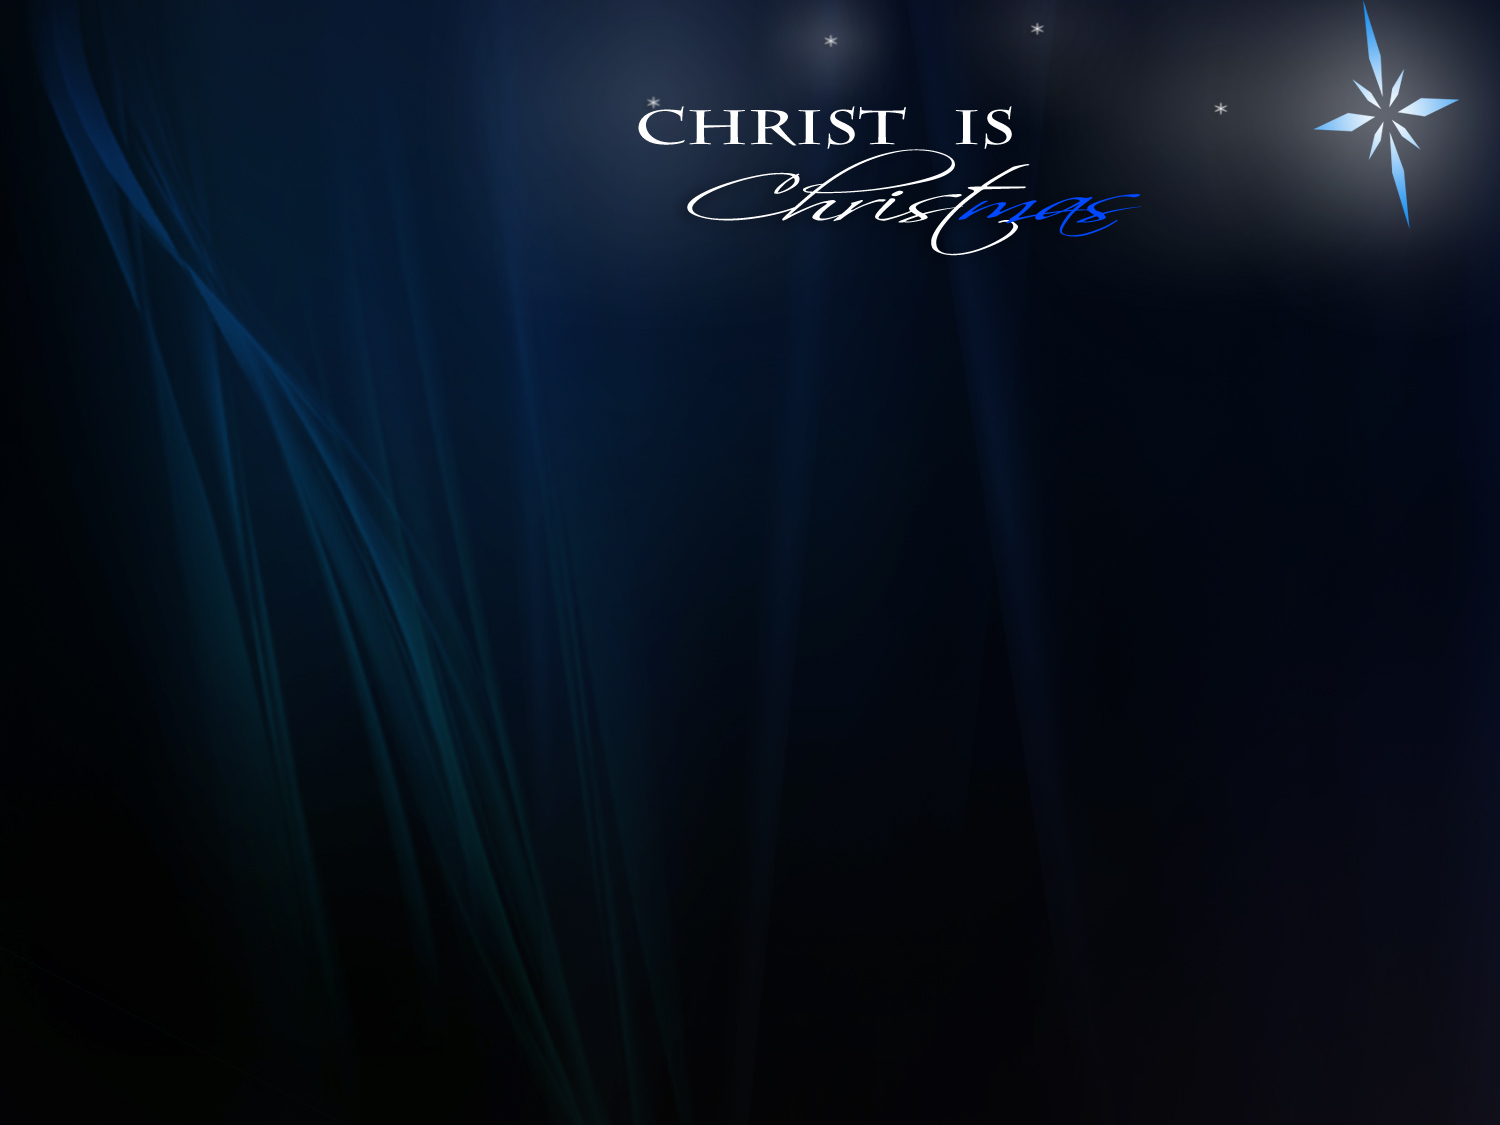 Free Christian Desktop Wallpaper For Your Computer  Christian 1500x1125